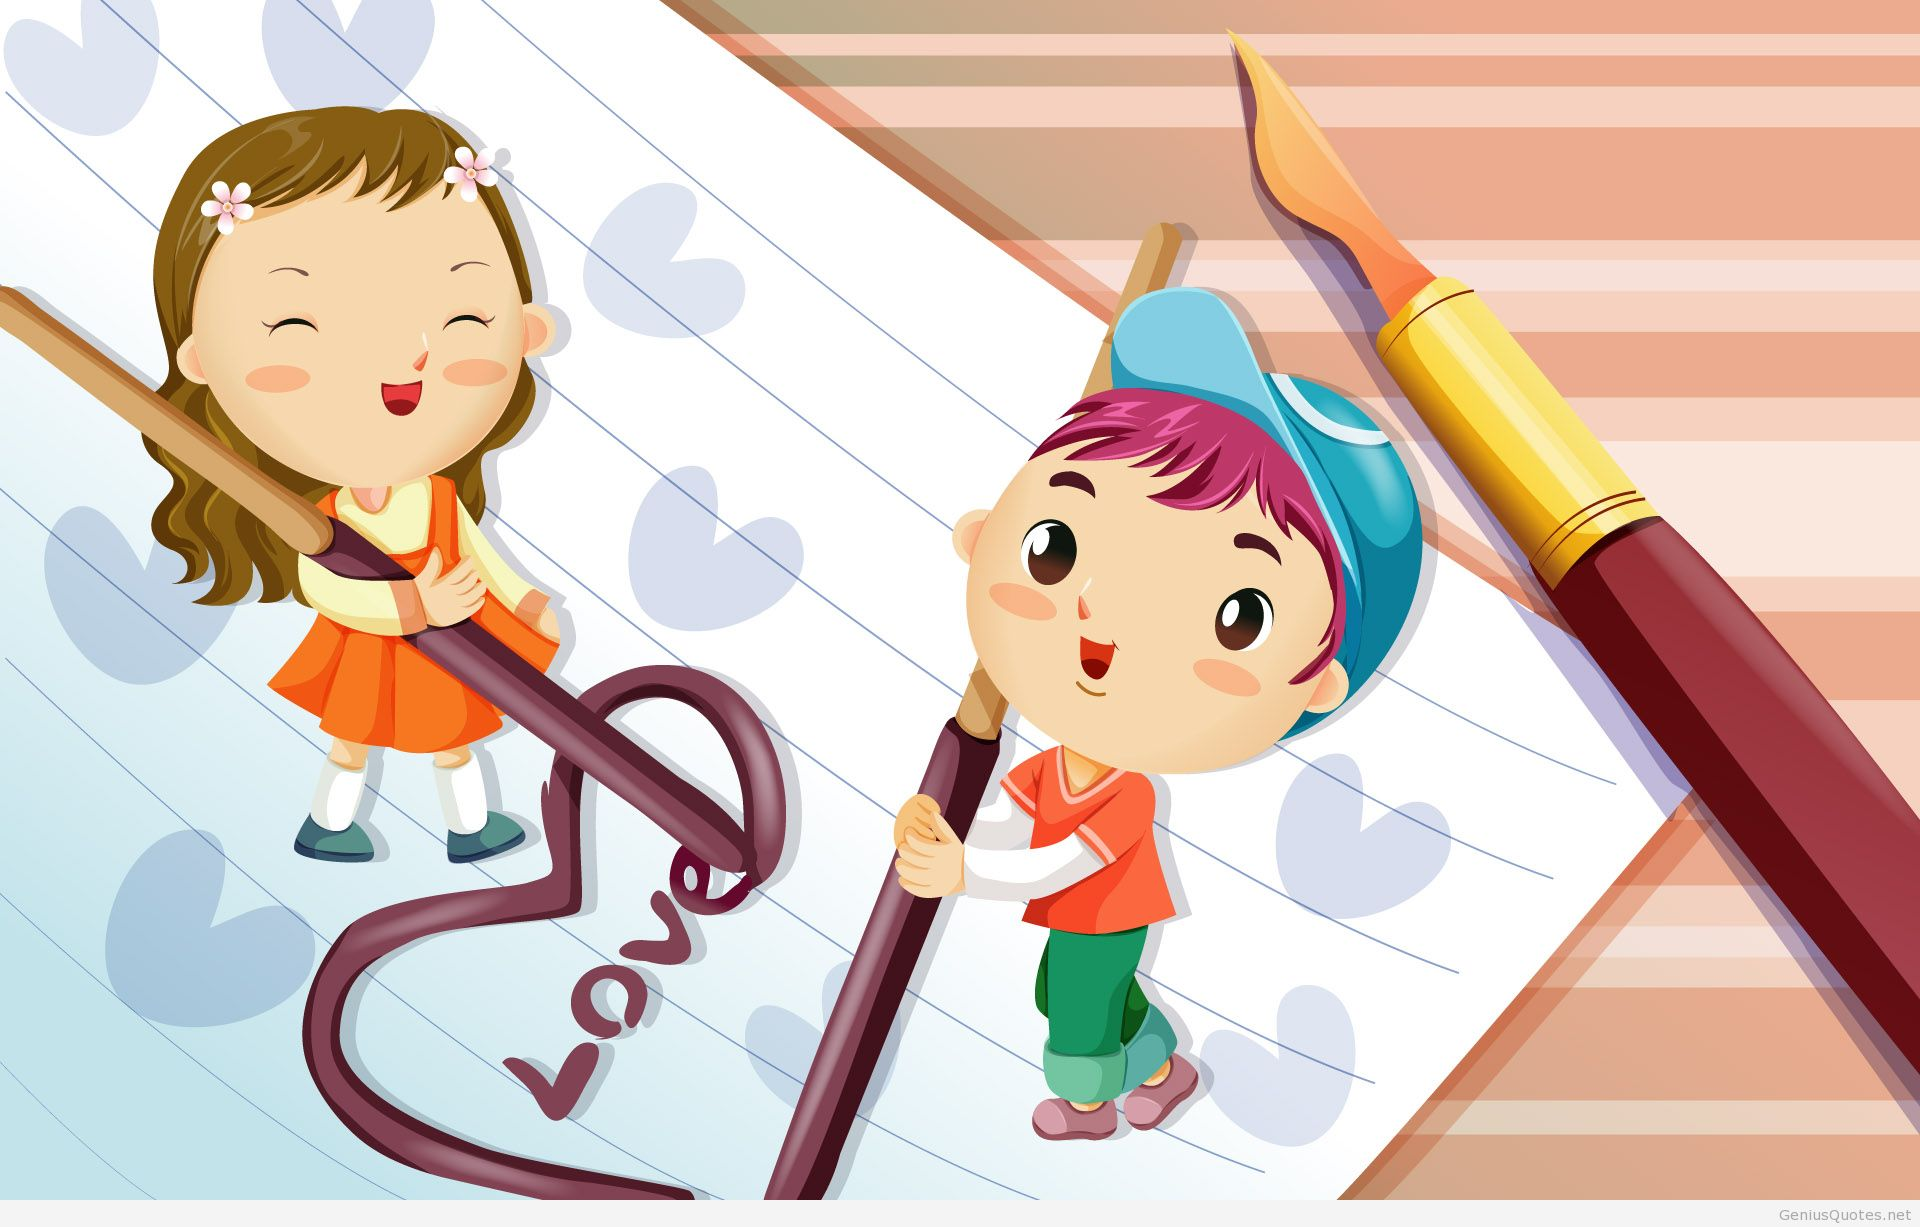 Cute baby couple clipart for facebook - ClipartFox graphic transparent library